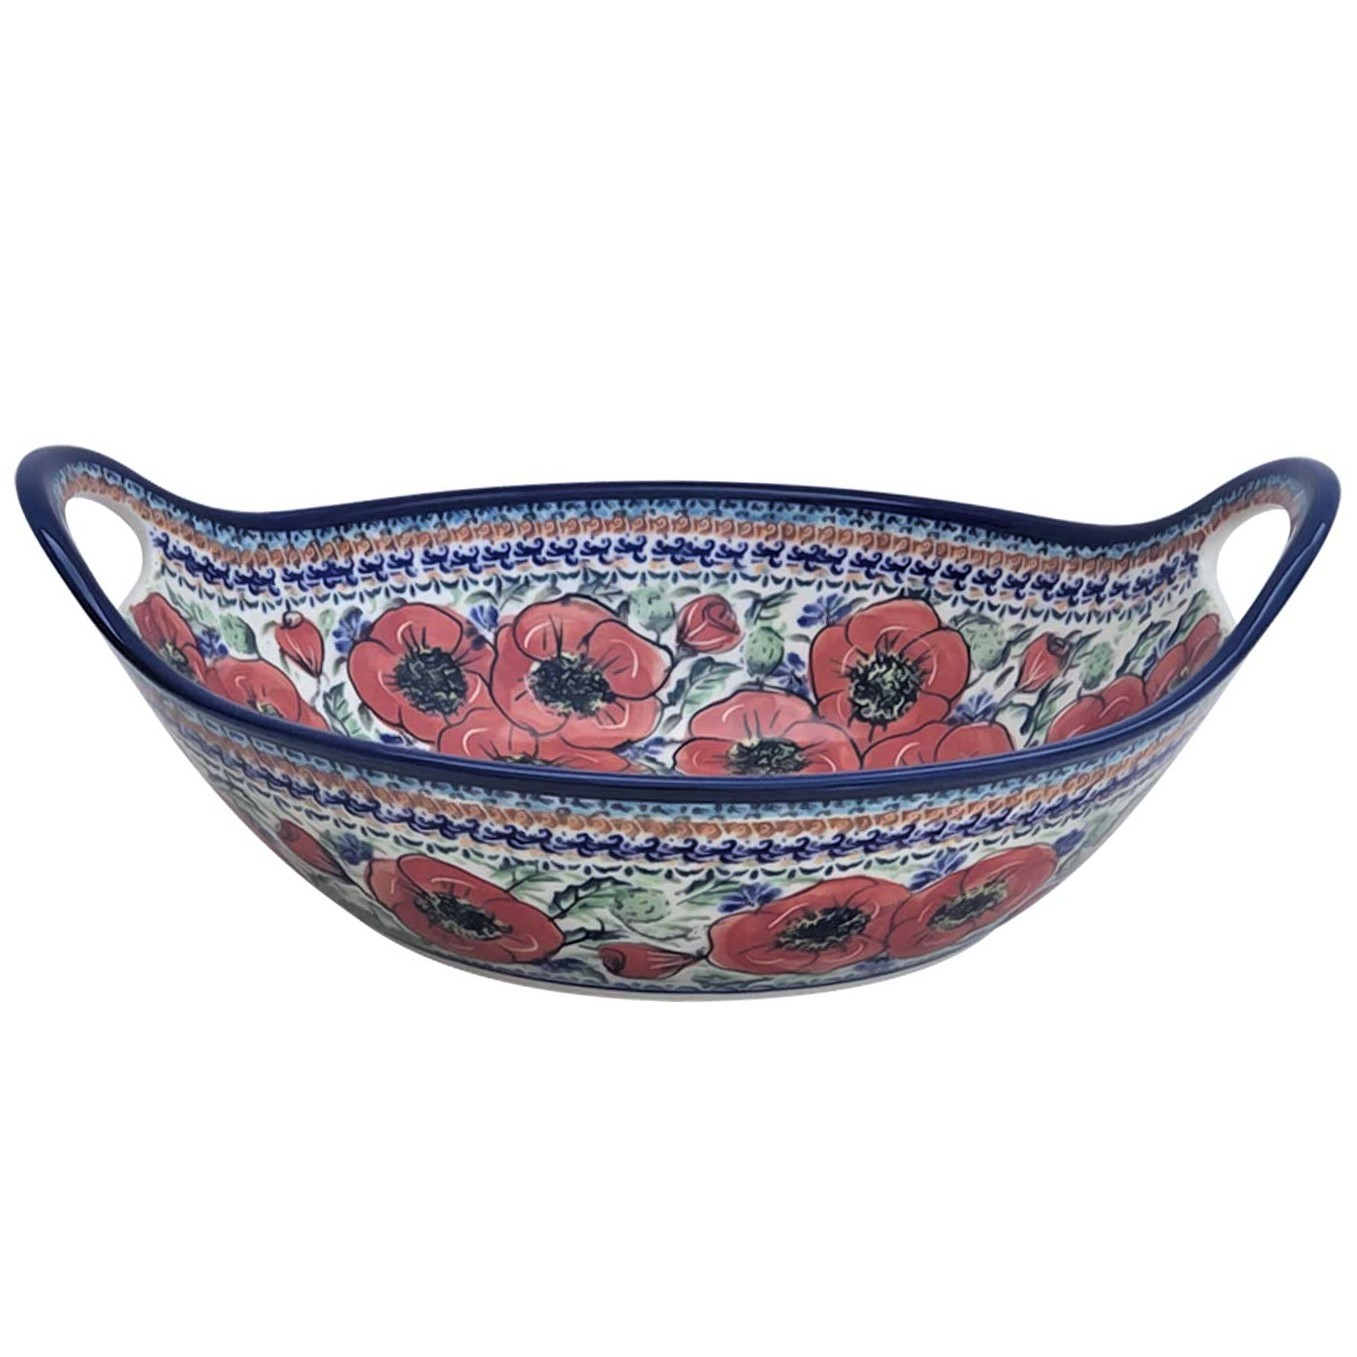 Pottery Avenue 13-inch Handled Stoneware Baker-Serving Bowl - 1347-257EX Bellissima